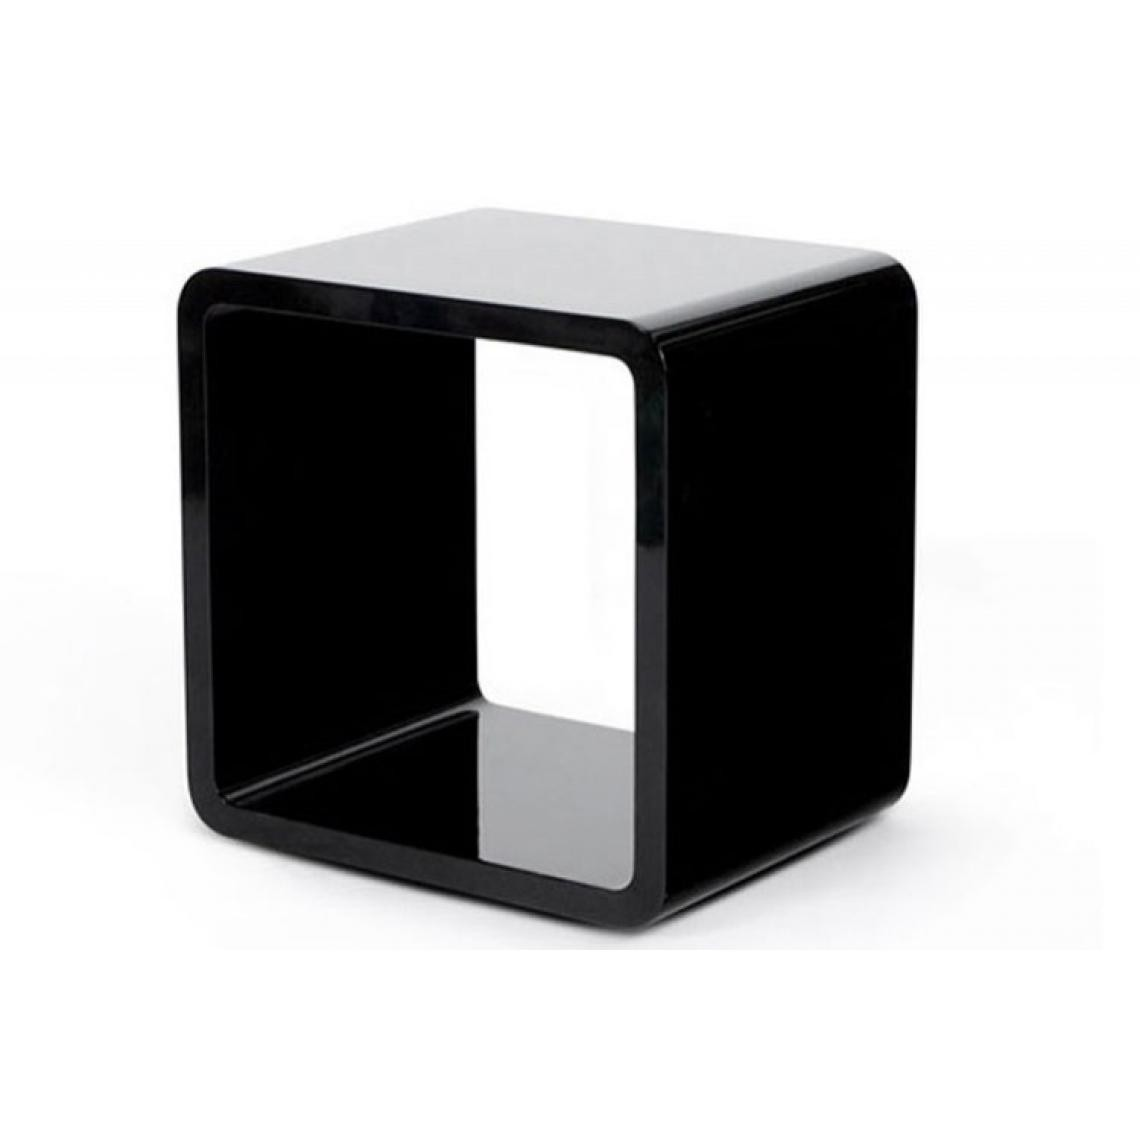 Table De Chevet Design Cube Noir Laque 3 Suisses